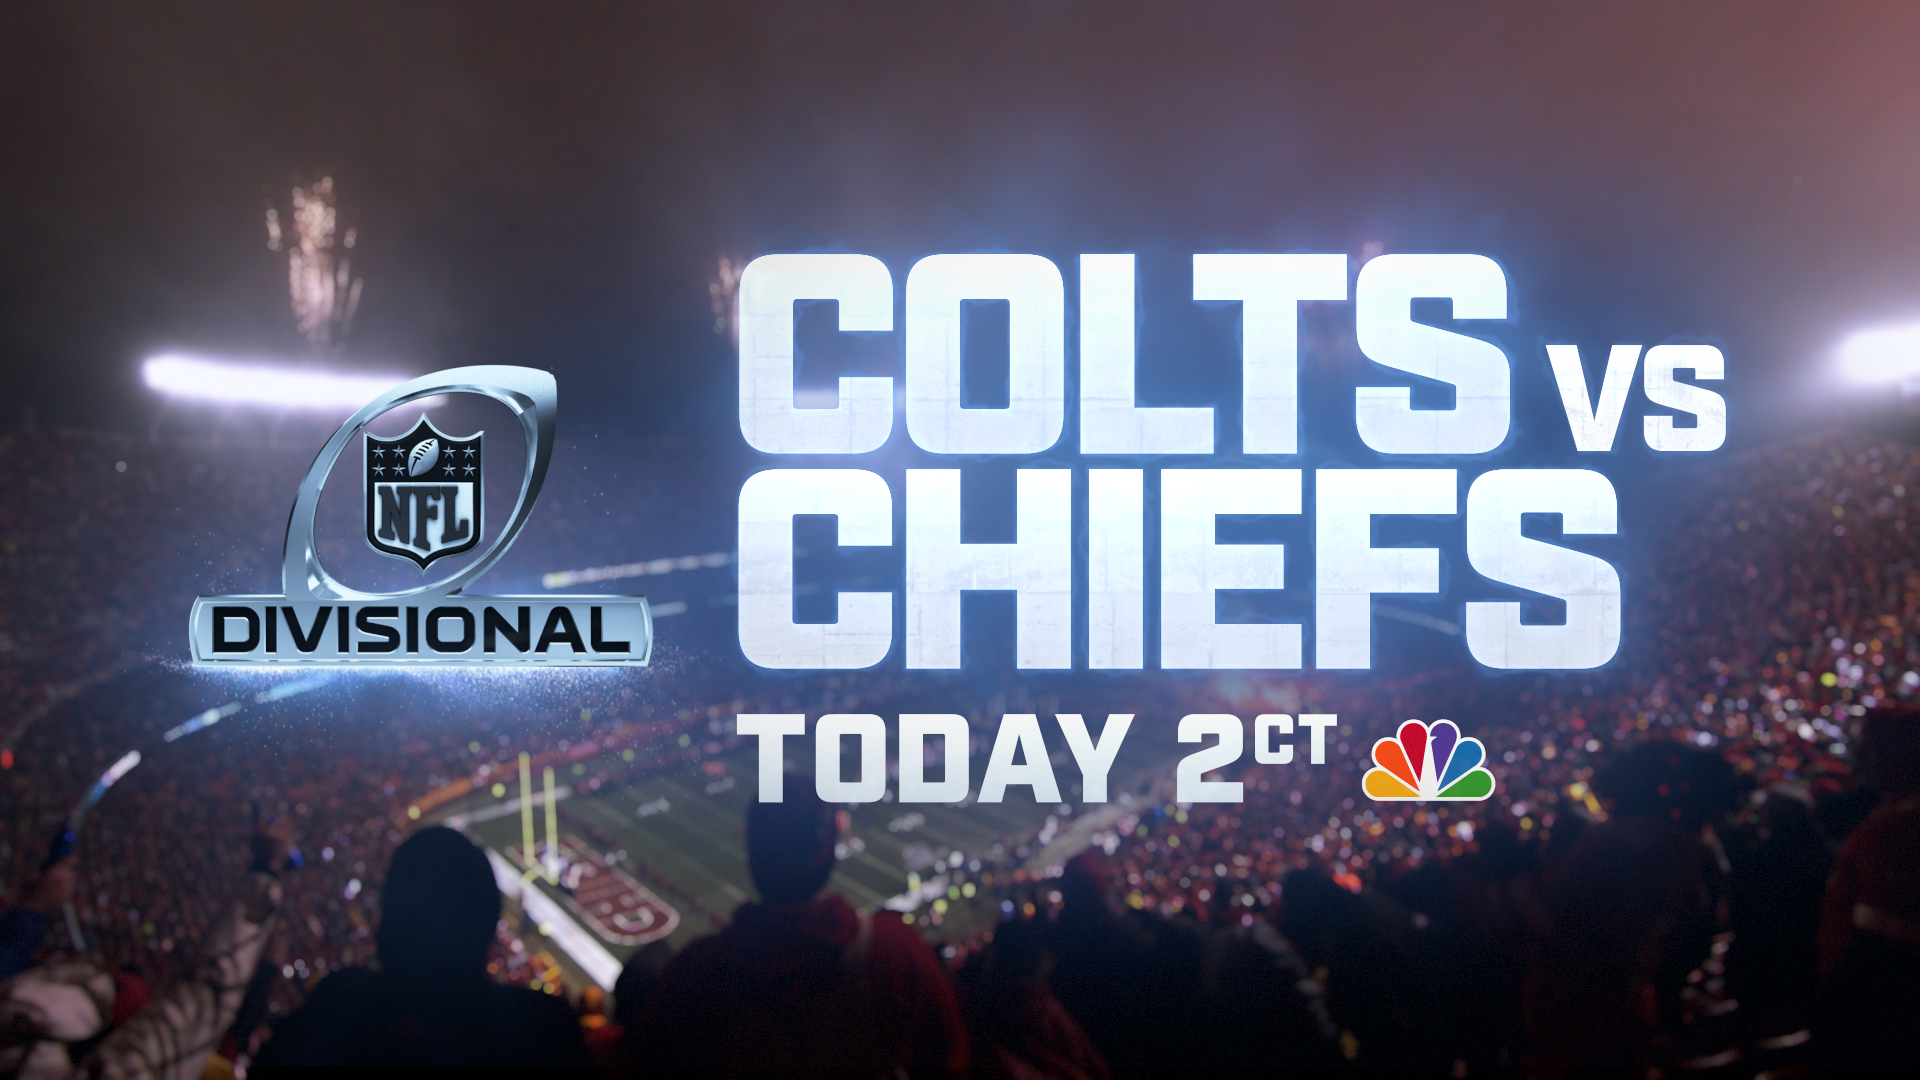 NFL_DIVISIONAL_COLTS_CHIEFS_TODAY_2CT_1547245649734.jpg